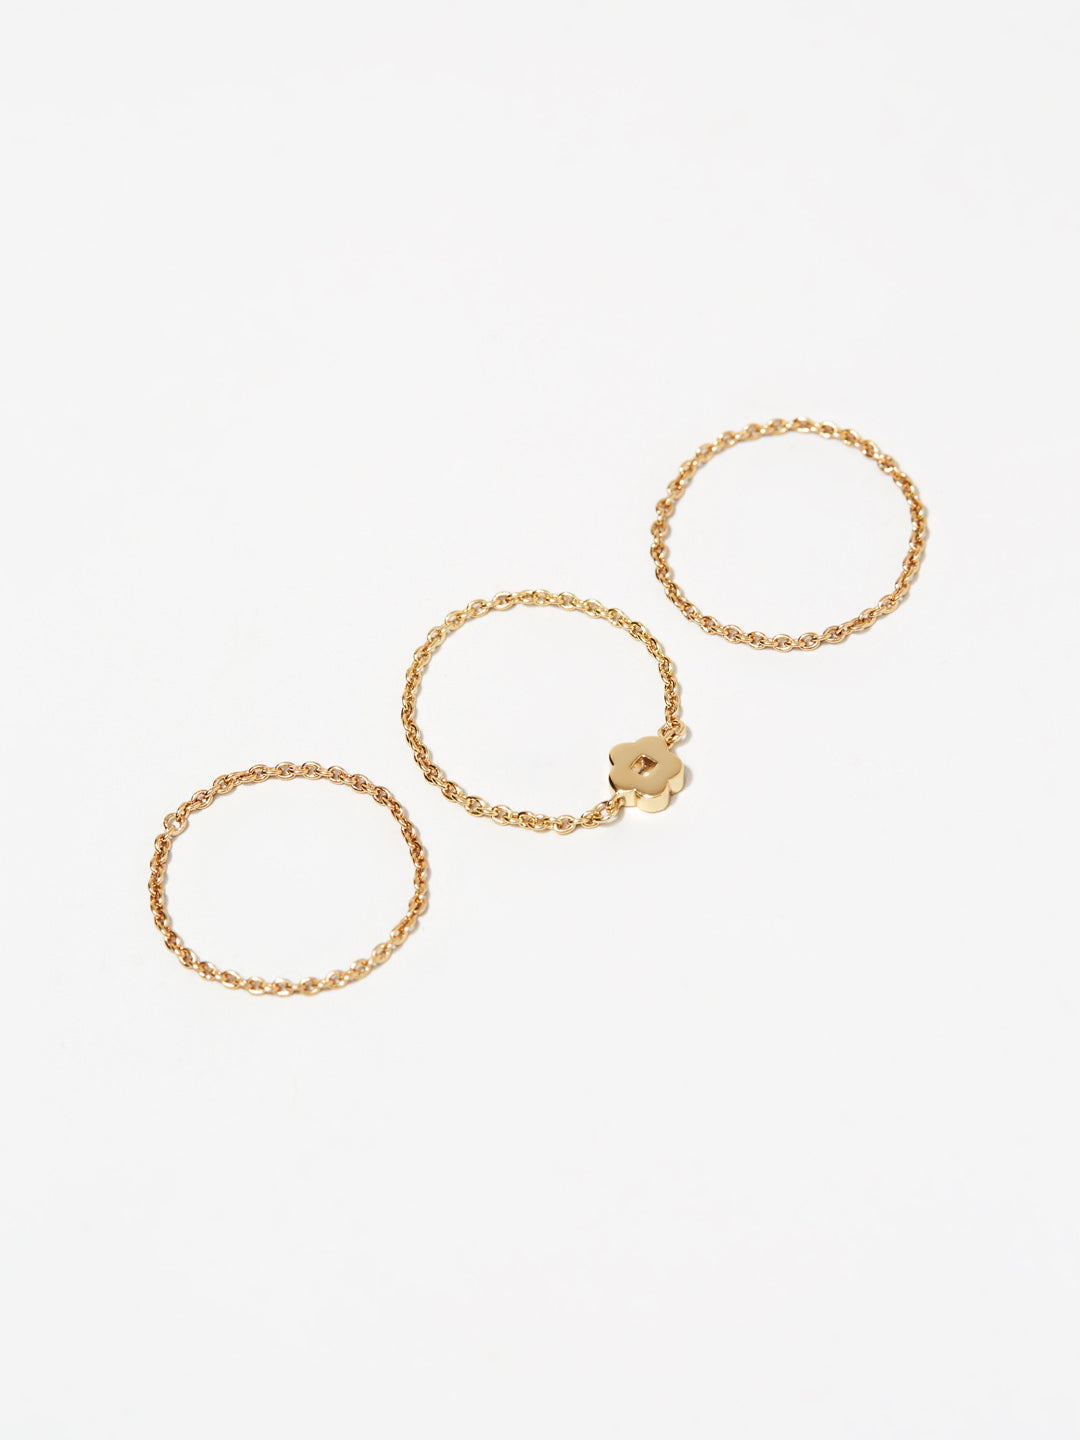 Ana Luisa Rings Chain Rings Stacking Chain Rings Aki Set Gold